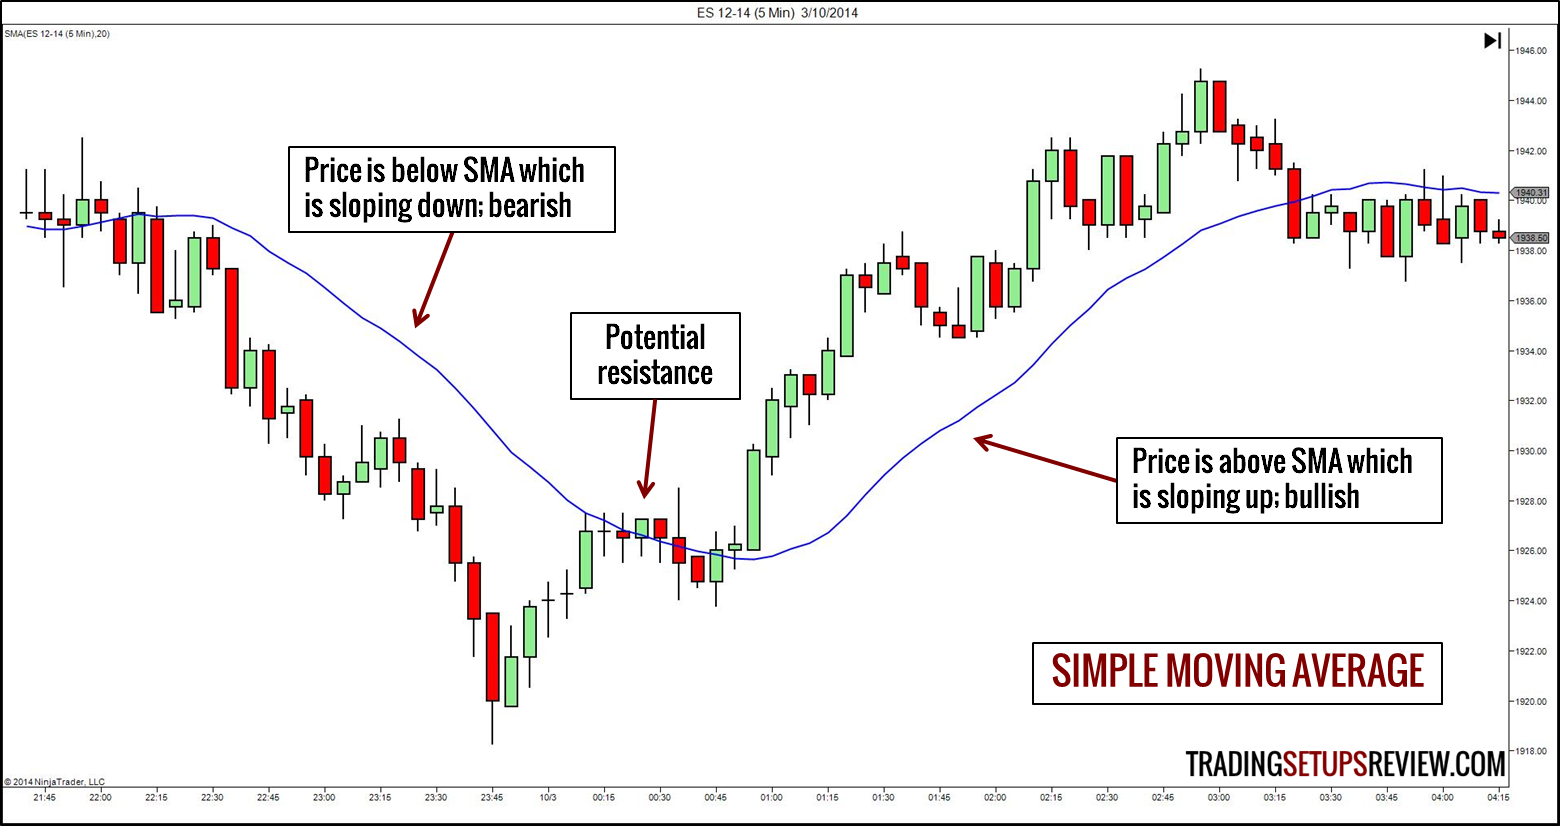 Moving average stock trading system